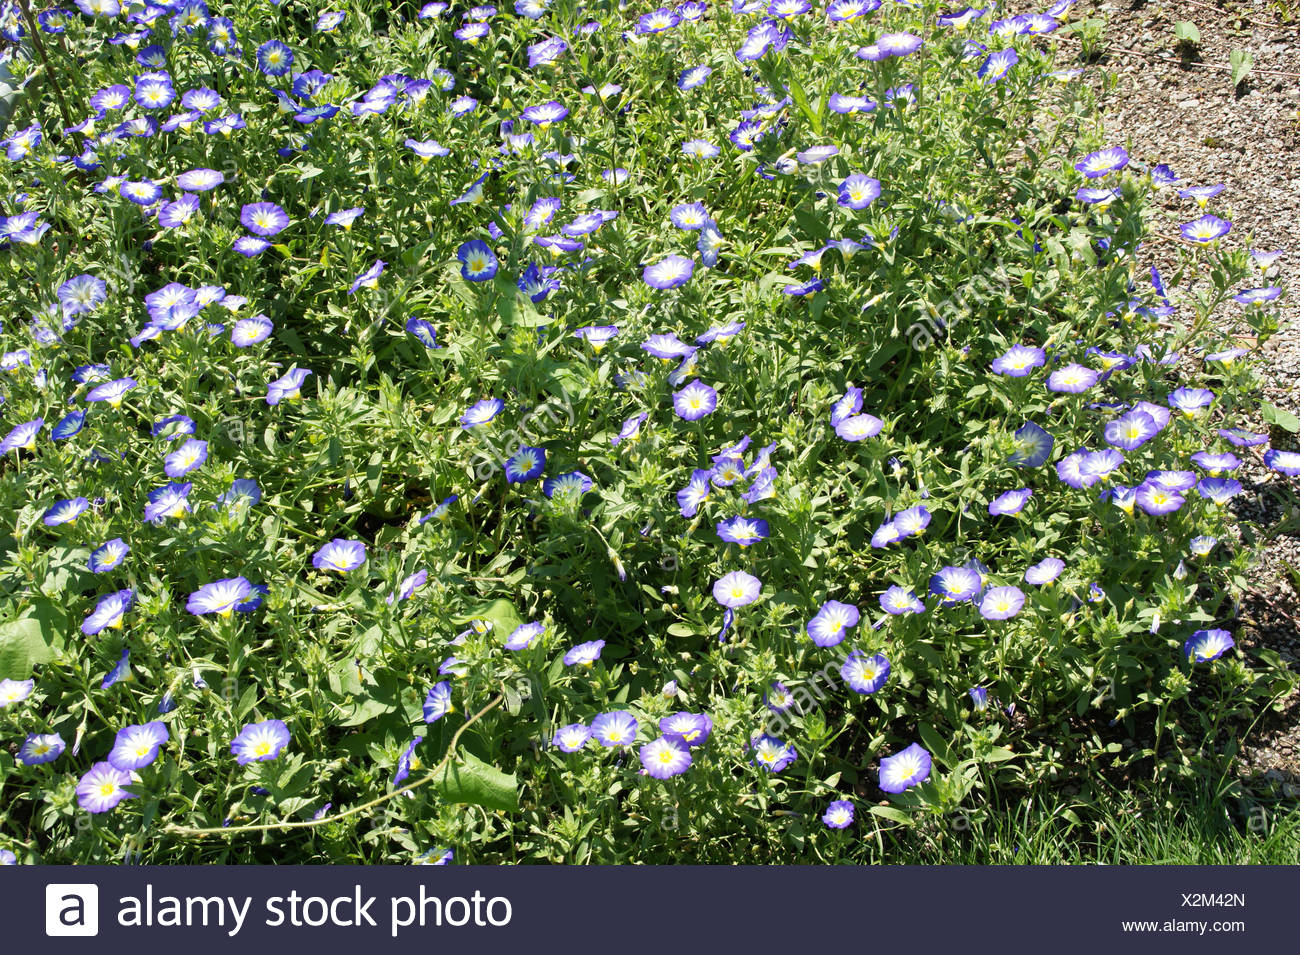 Convolvulus tricolor, Dwarf morning glory - Stock Image